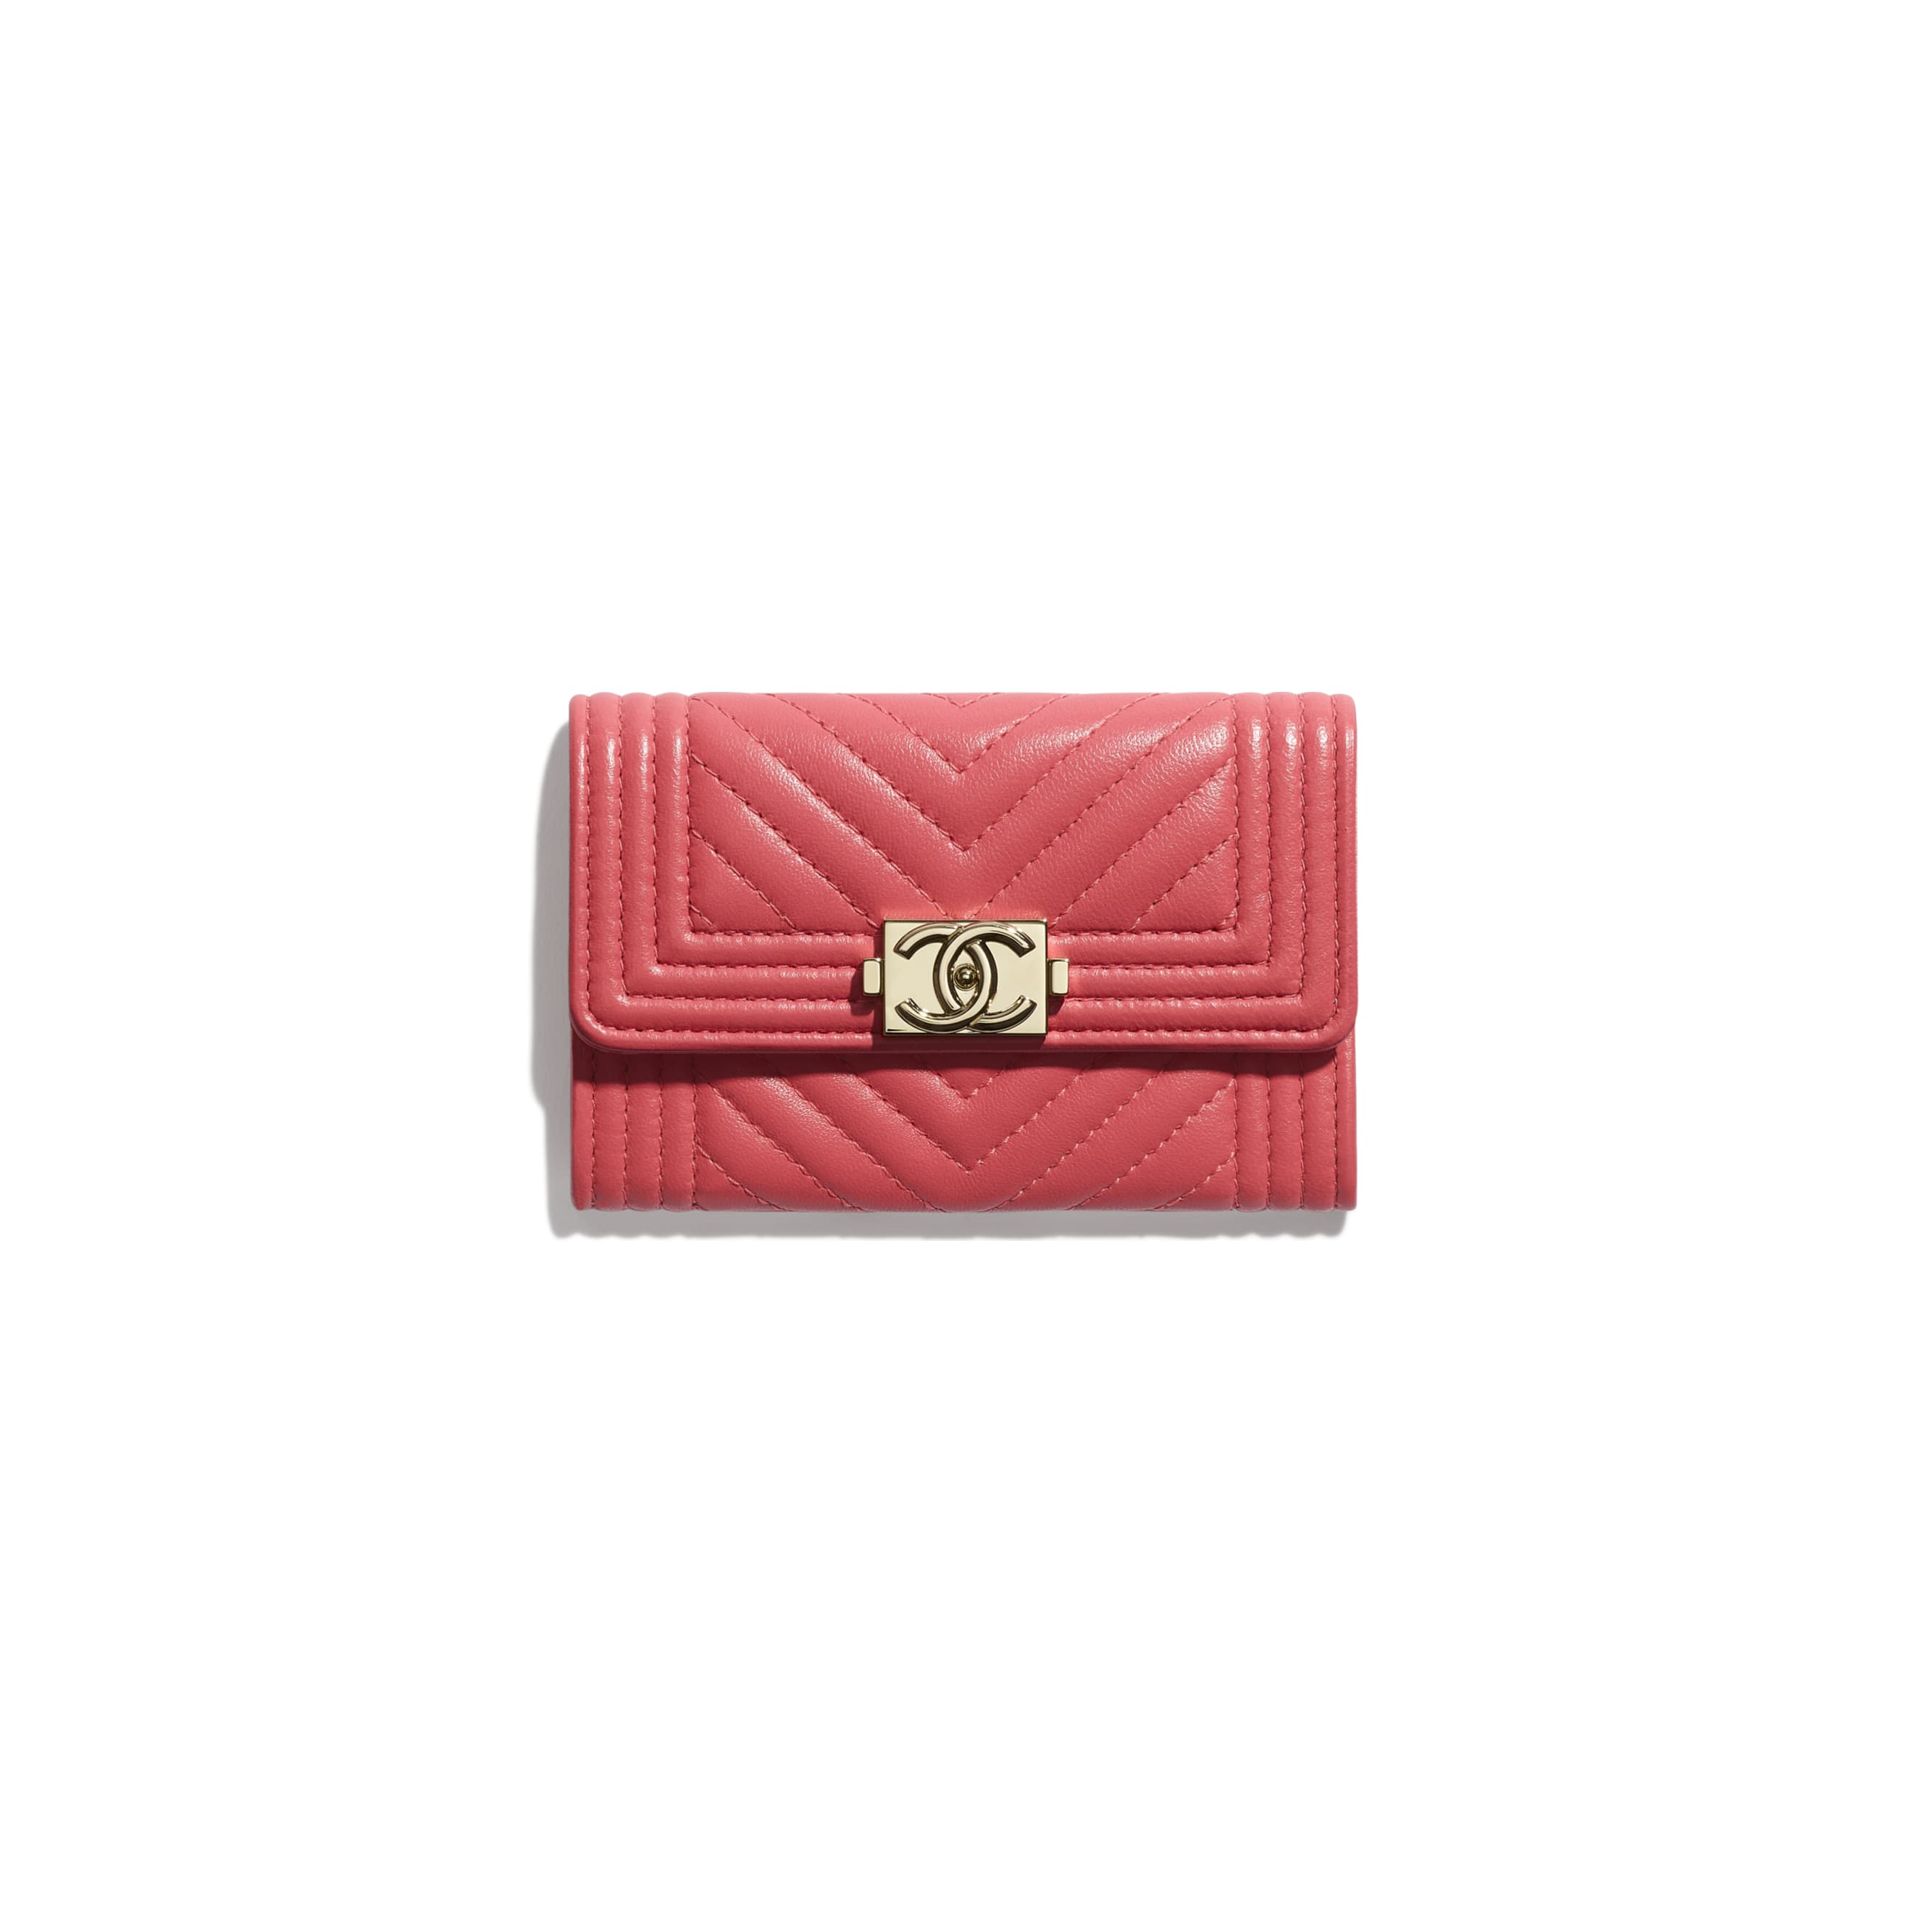 BOY CHANEL Flap Card Holder - Pink - Lambskin - CHANEL - Default view - see standard sized version